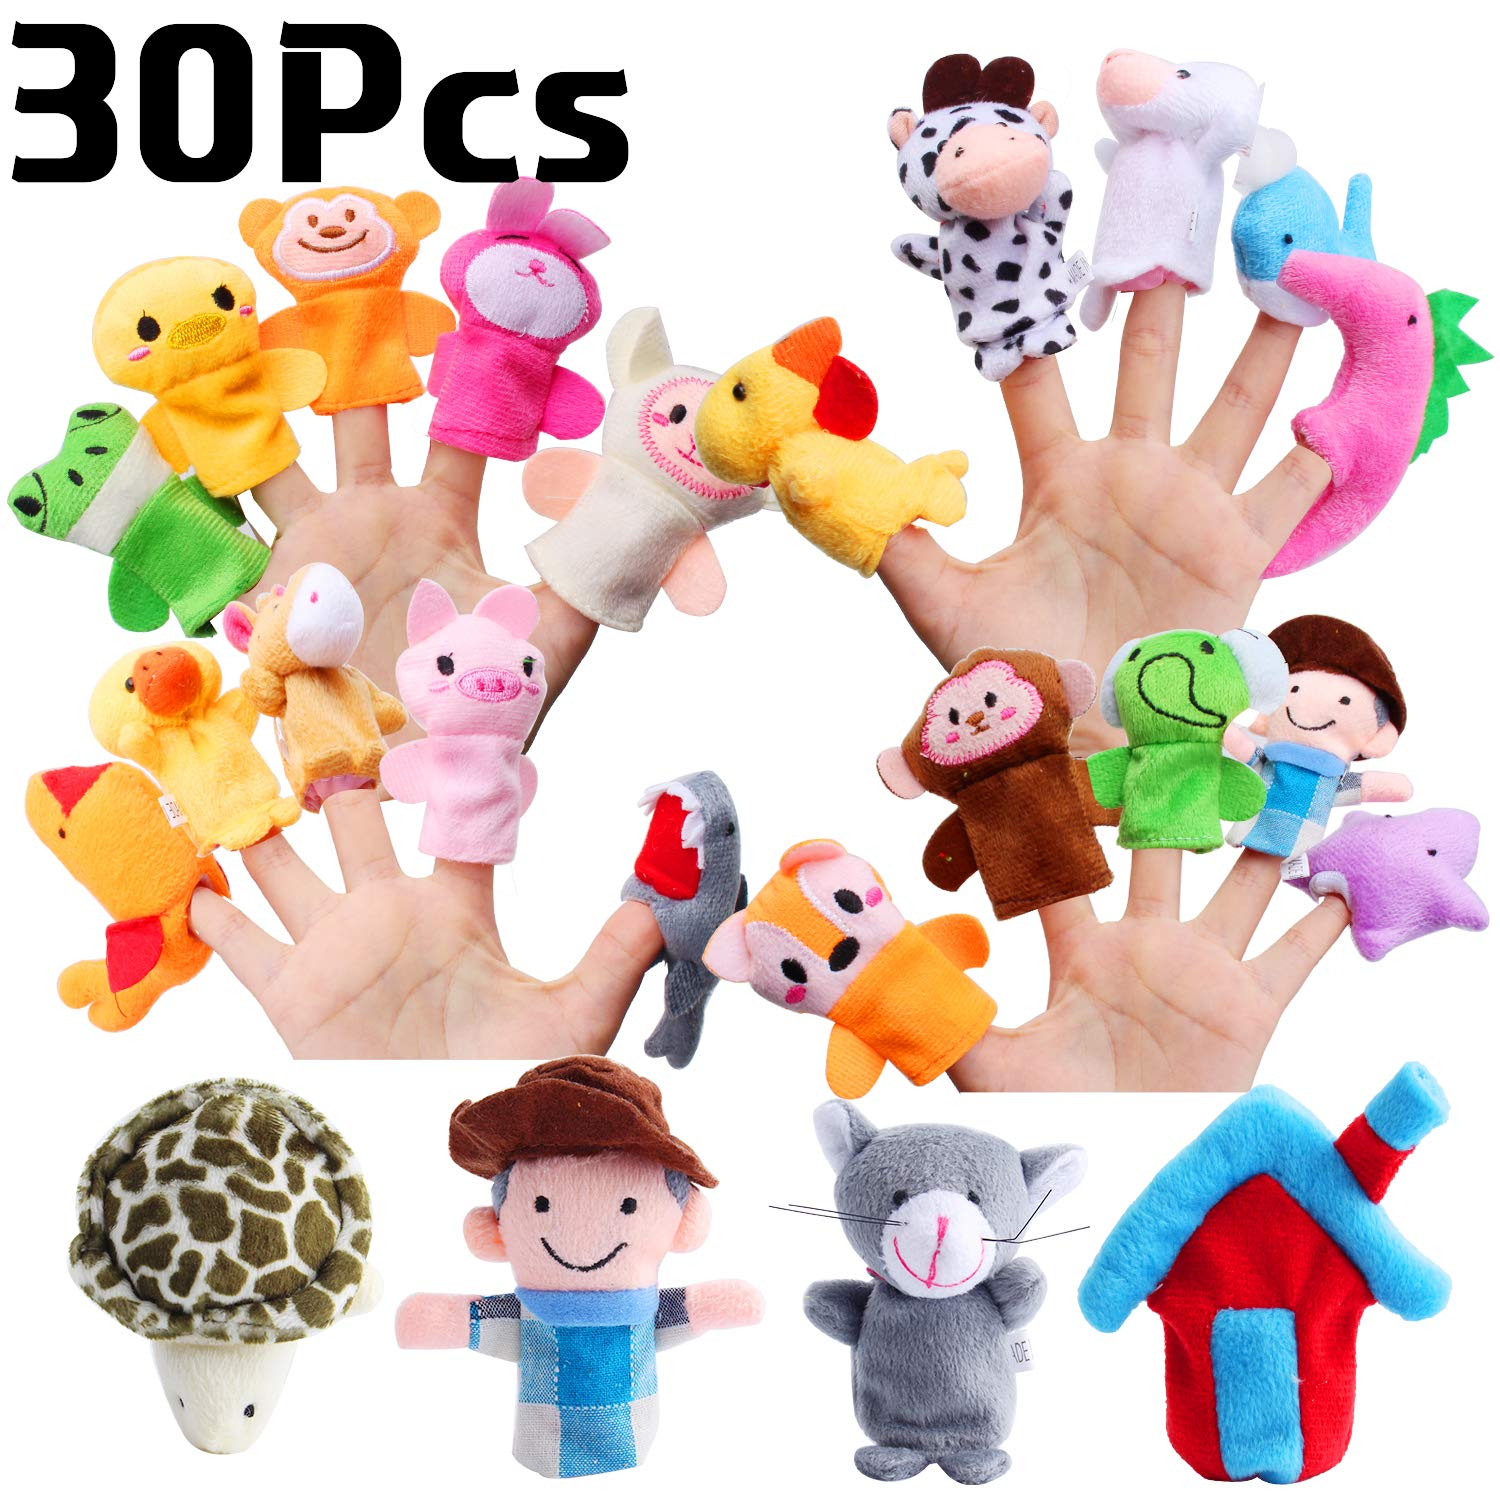 Hicdaw 30PCS Farm Animals Finger Puppets, Baby Story Puppet Toys Mini Plush Figures Toy Soft Hands Finger Puppets for Children